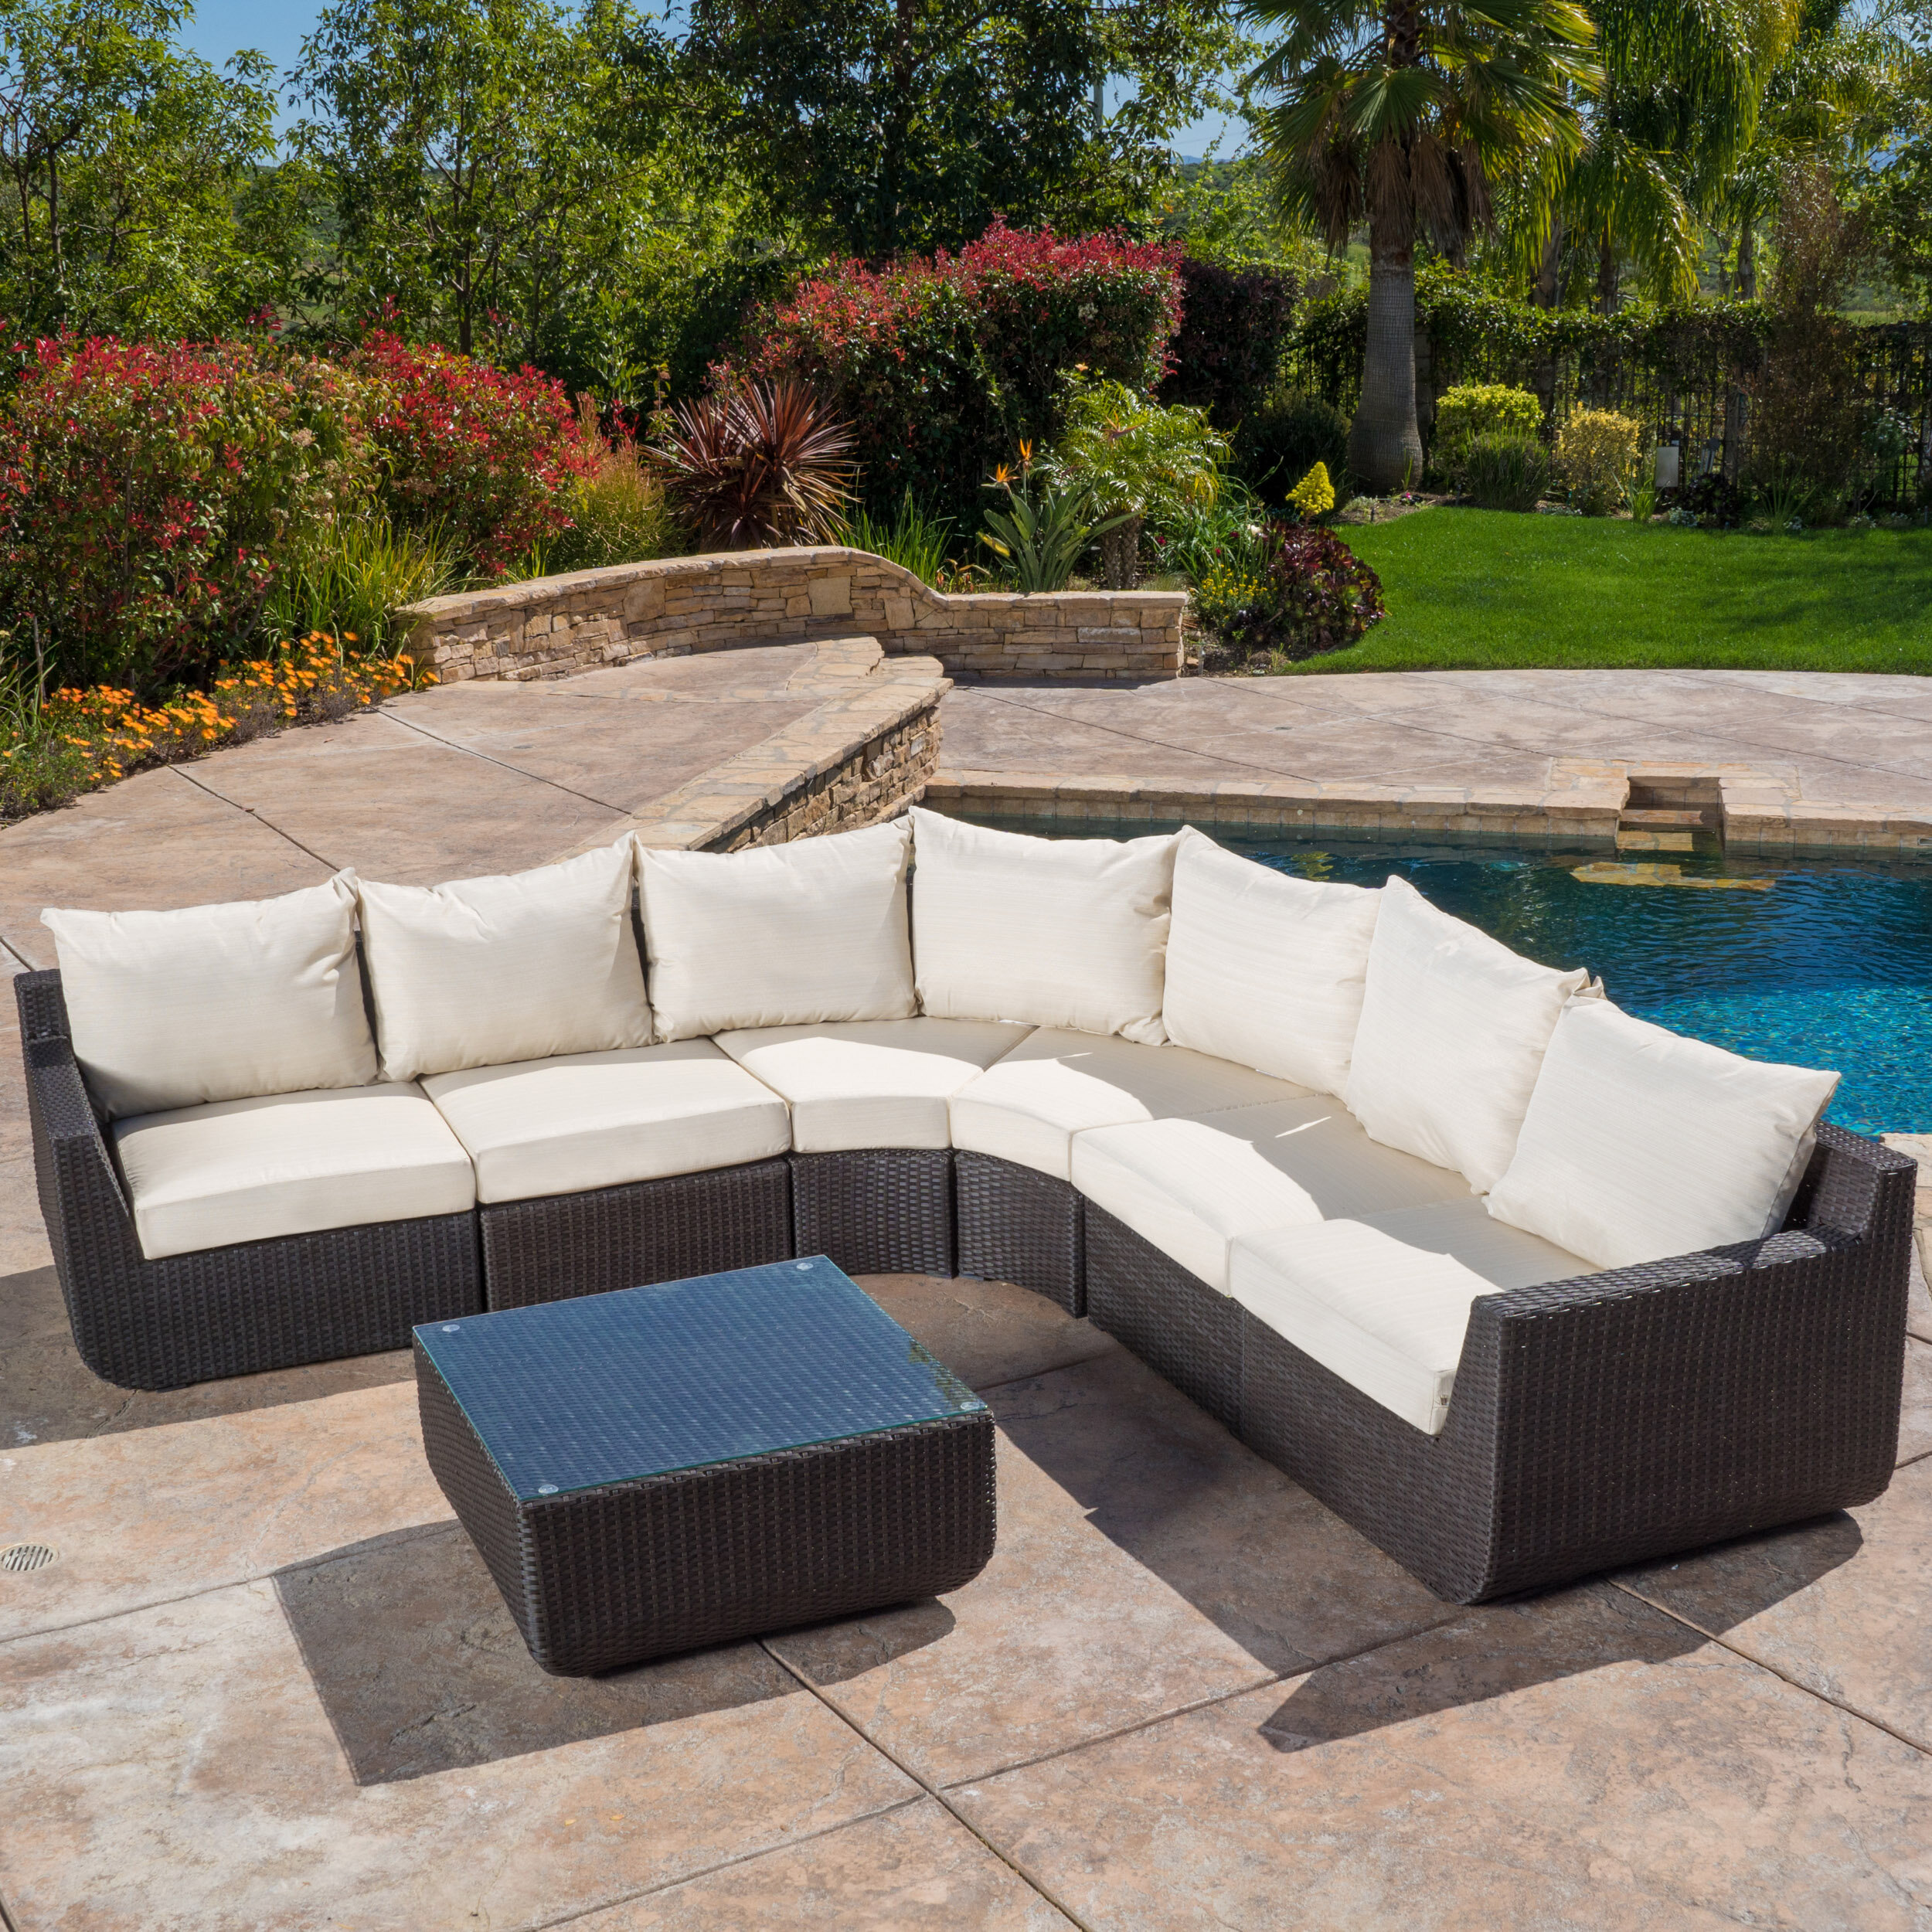 Brayden Studio Liverman 7 Piece Sectional Set with Cushions